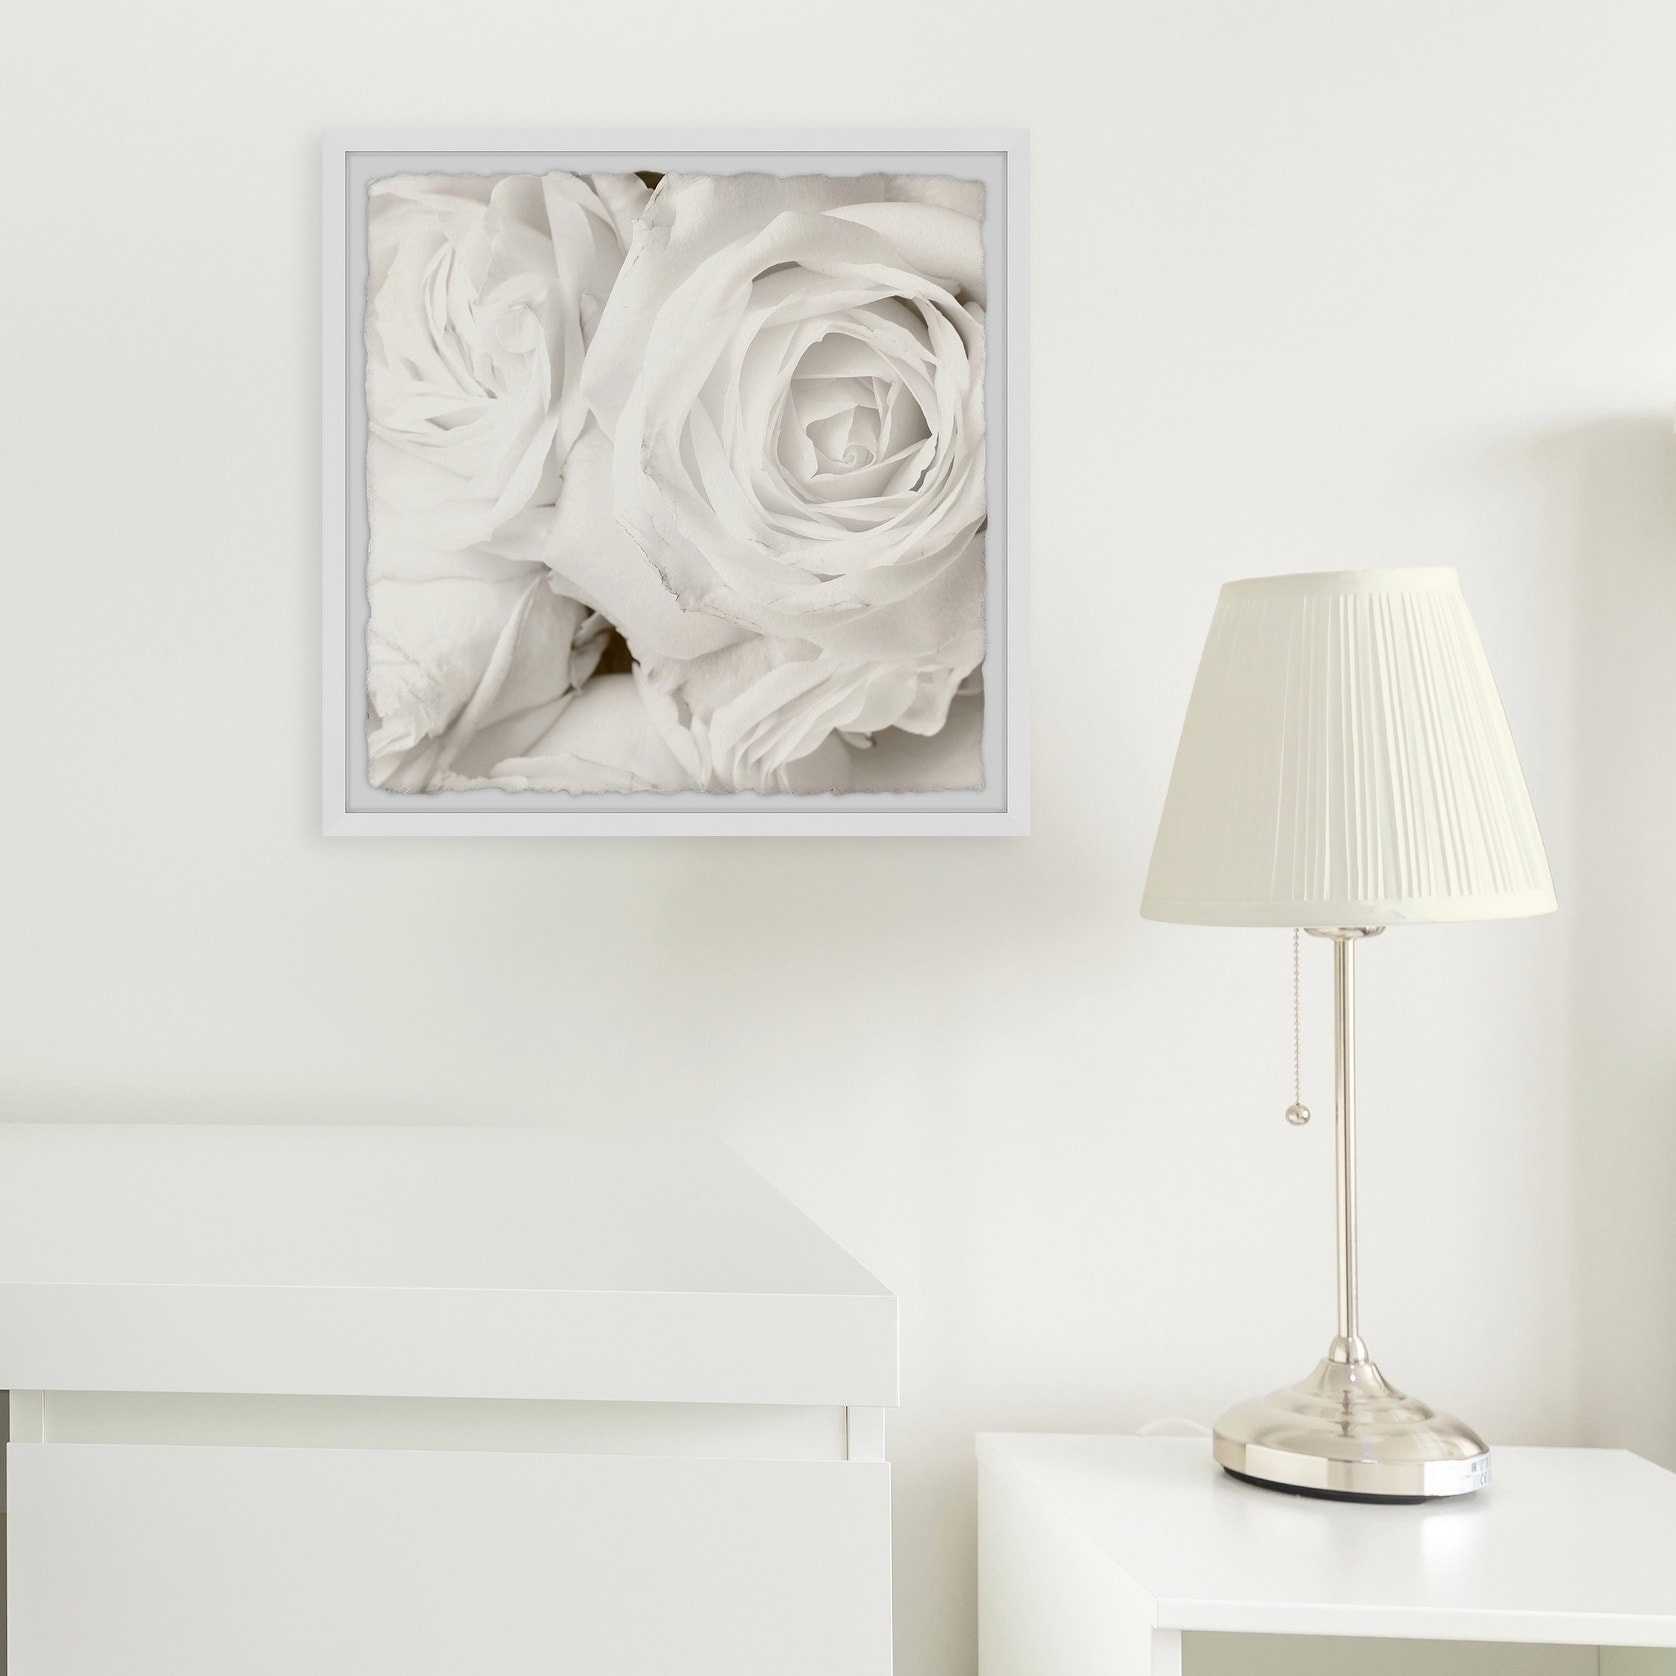 Gracewood Hollow Creamy White Roses Framed Painting Print On Sale Overstock 30243365